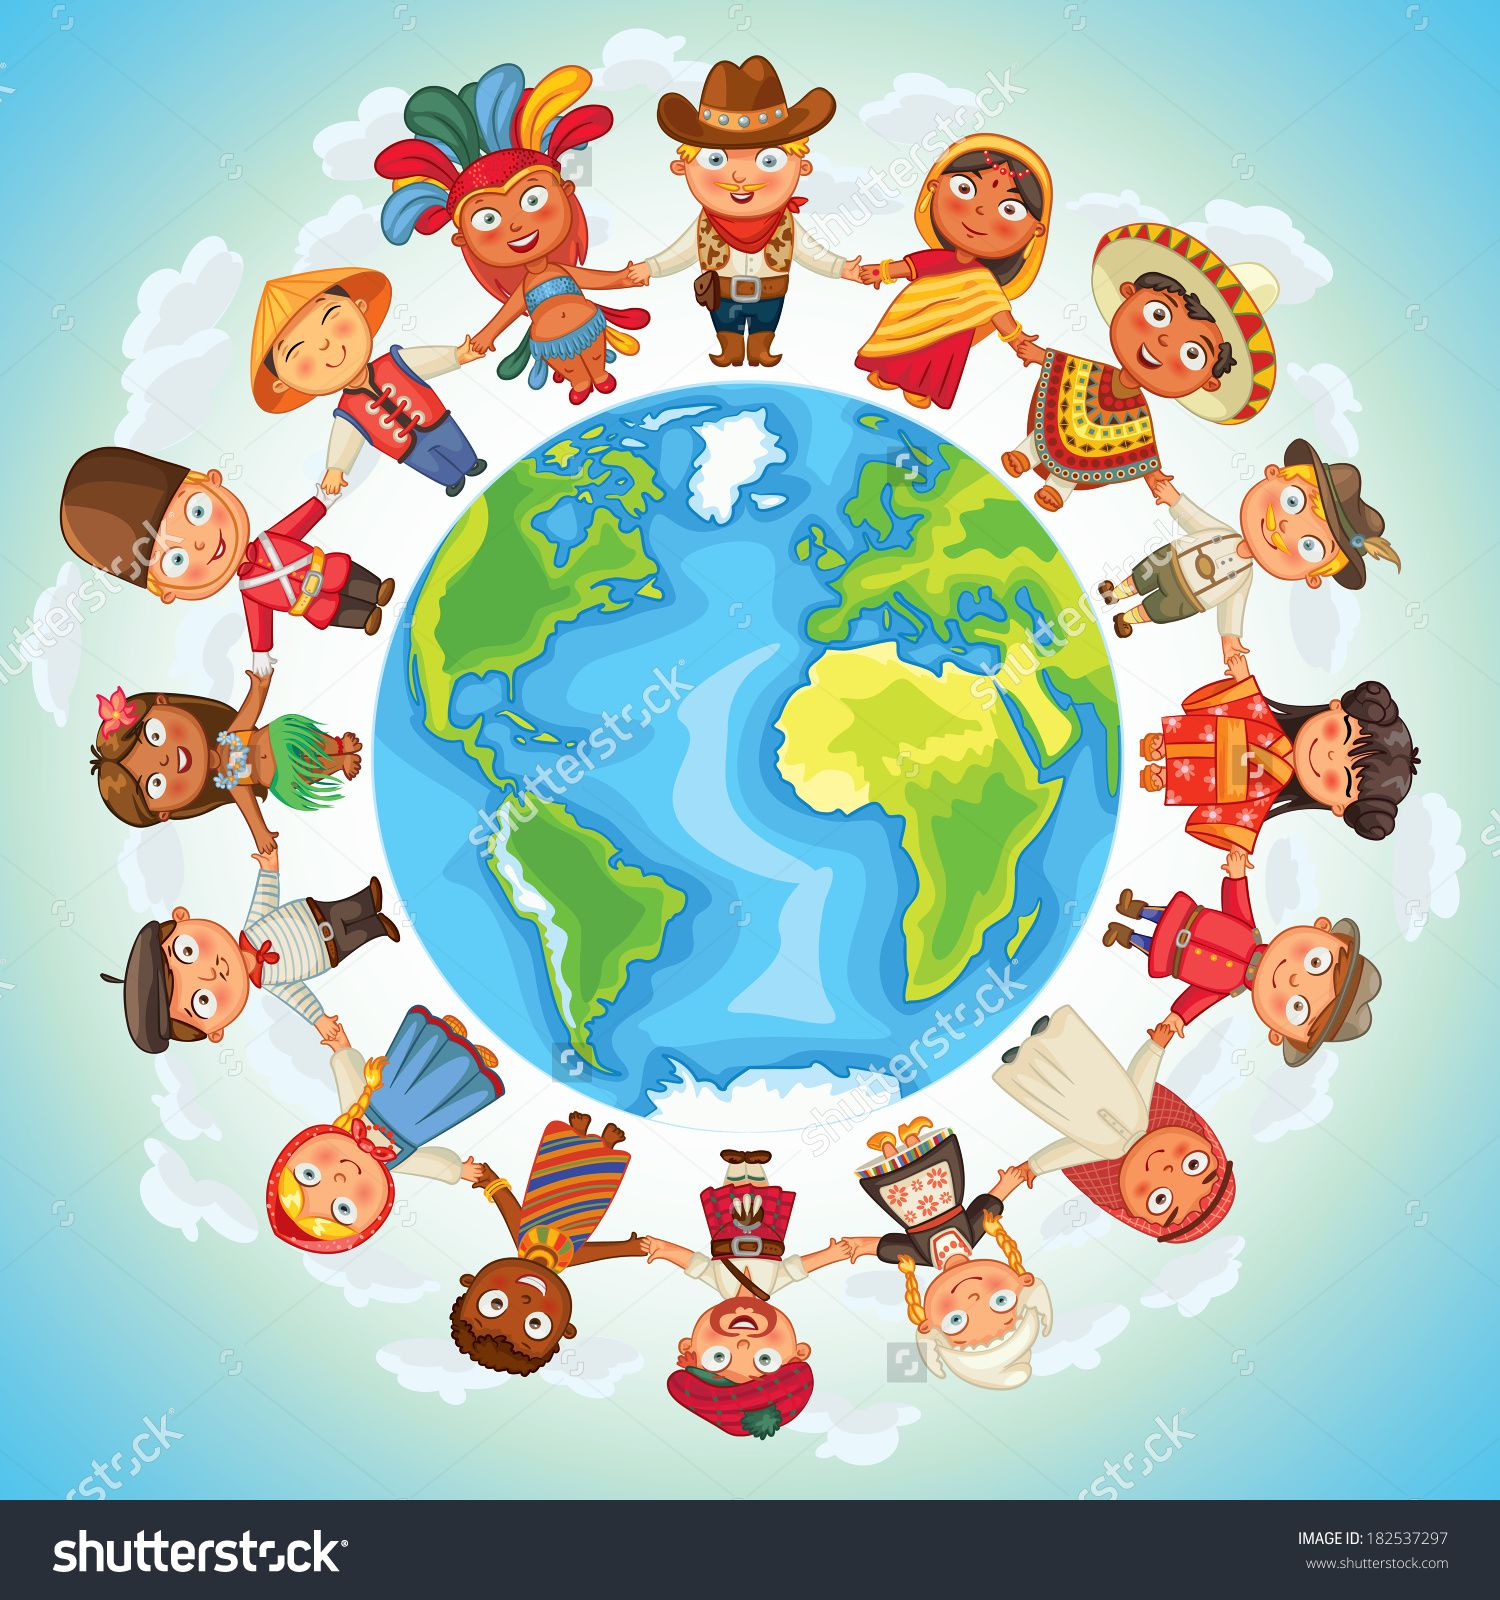 Multicultural: Multicultural Character On Planet Earth Cultural Diversity